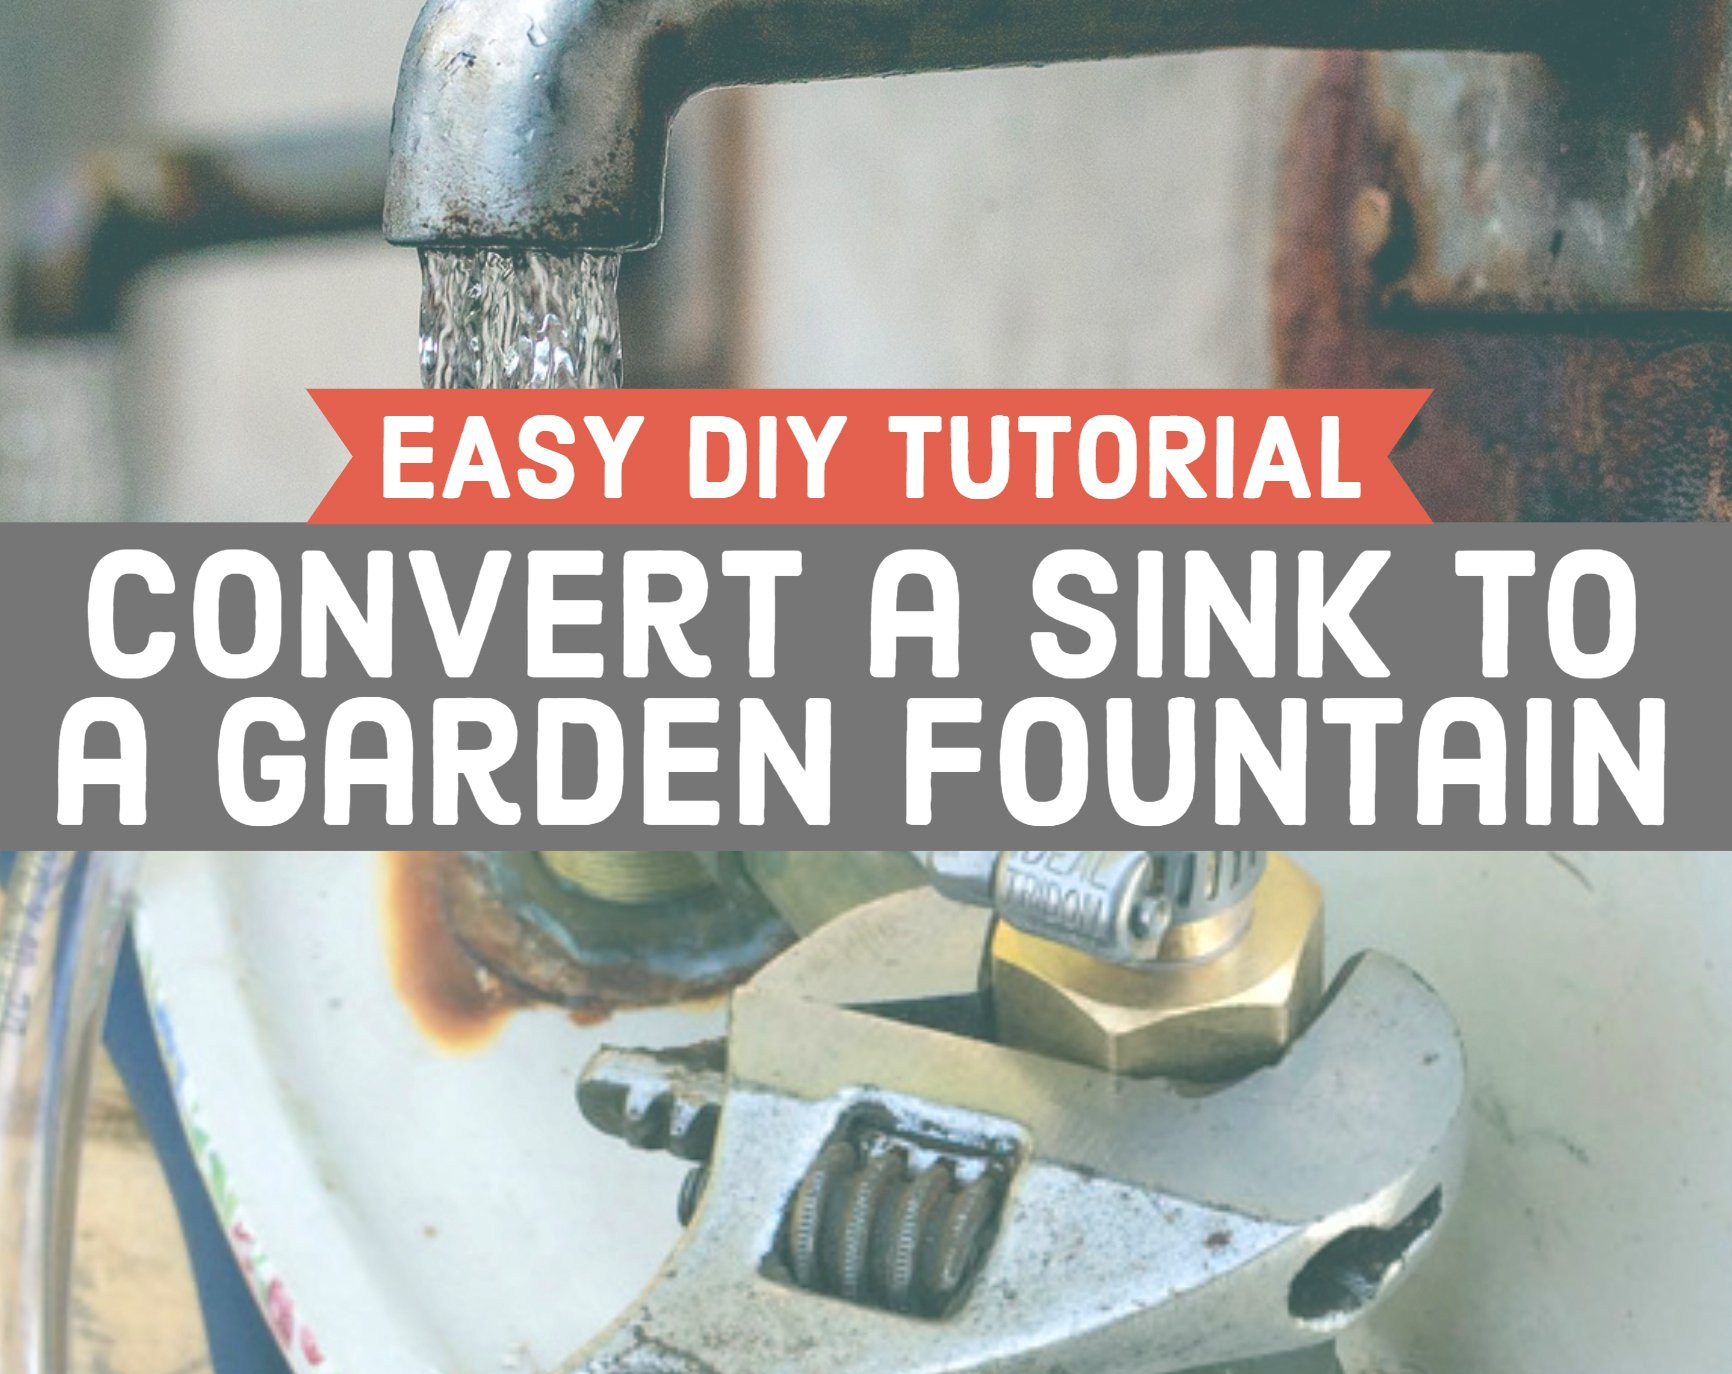 tutorial to convert a sink to a garden fountain